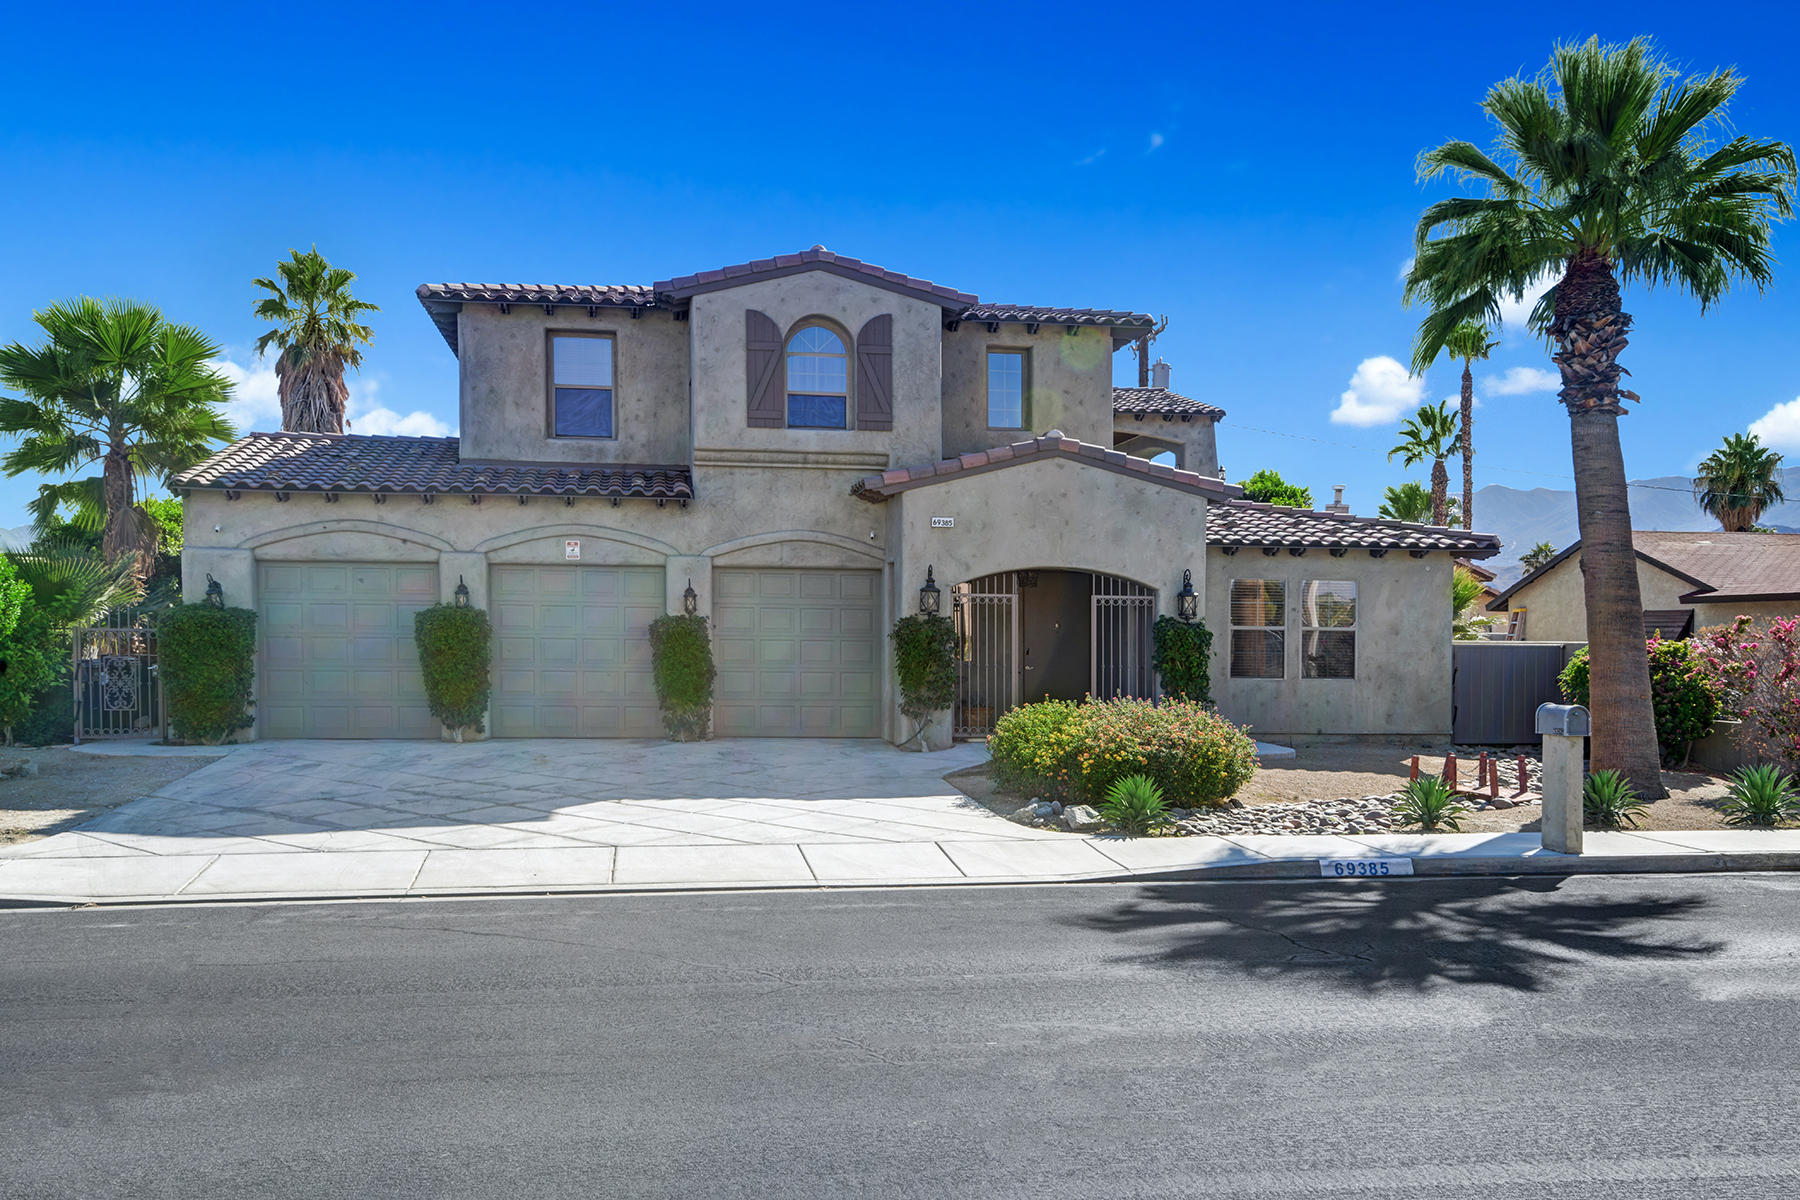 Photo of 69385 Mccallum Way, Cathedral City, CA 92234